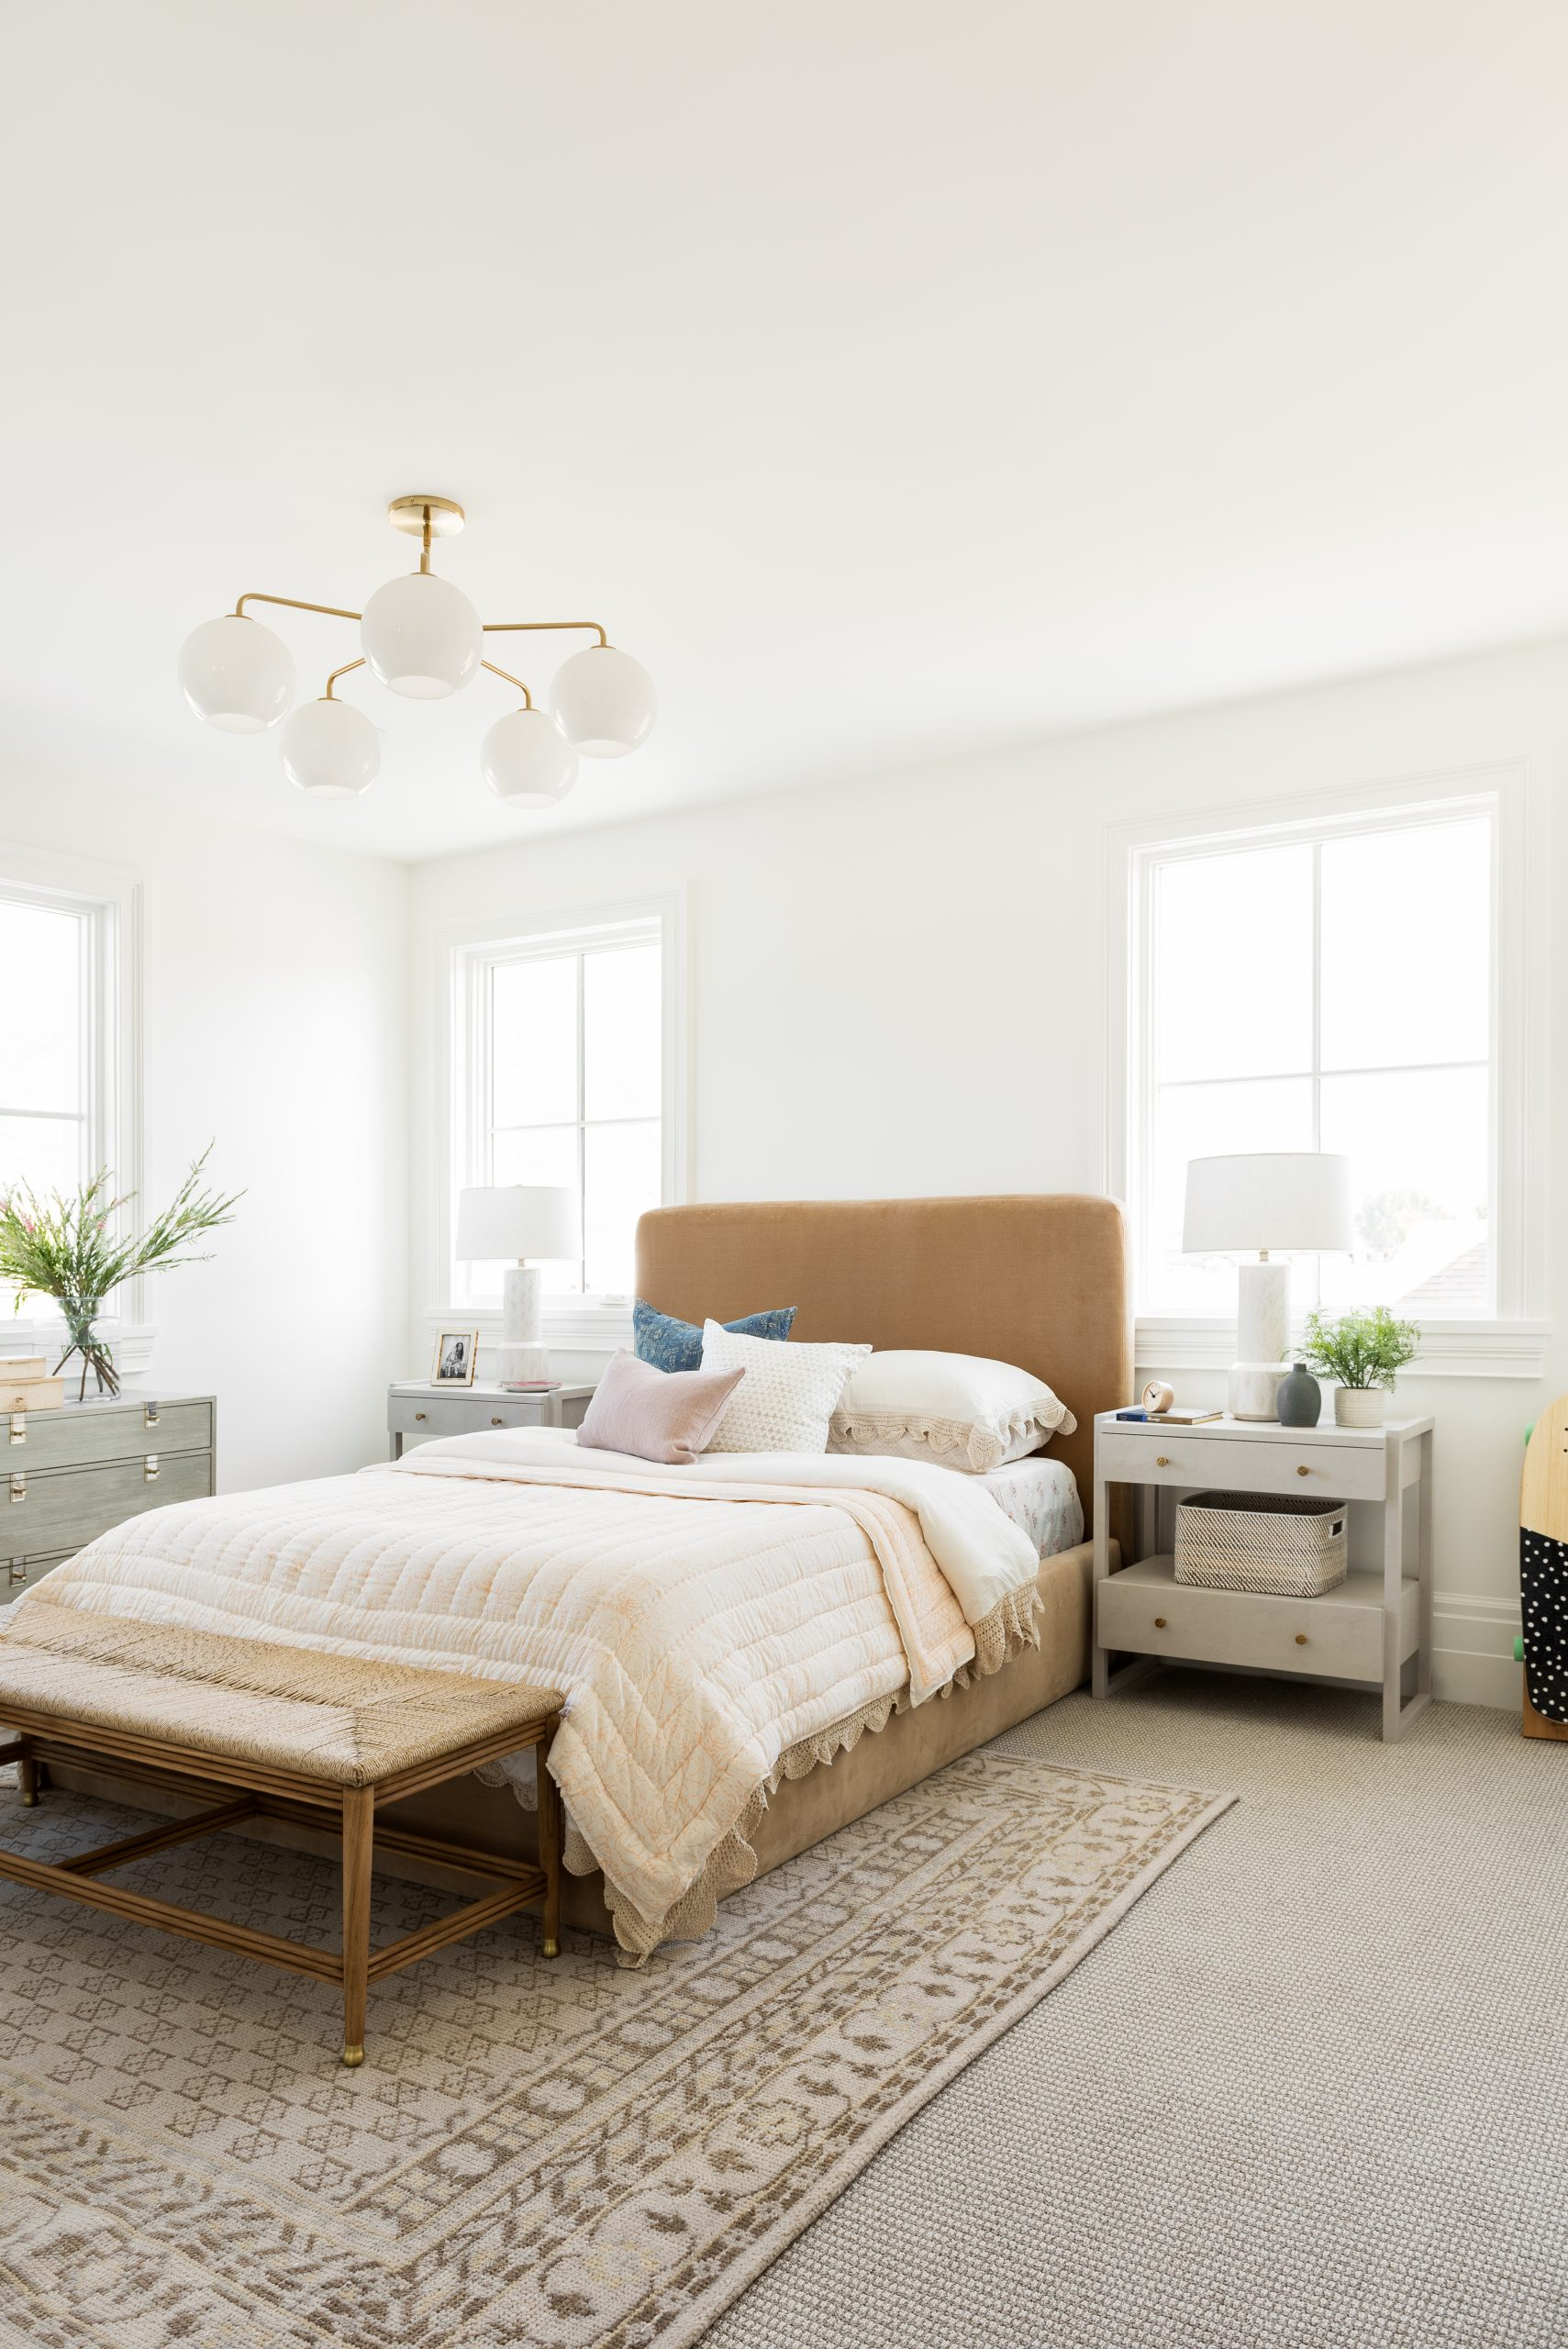 Home on The Ranch: The Kids Rooms